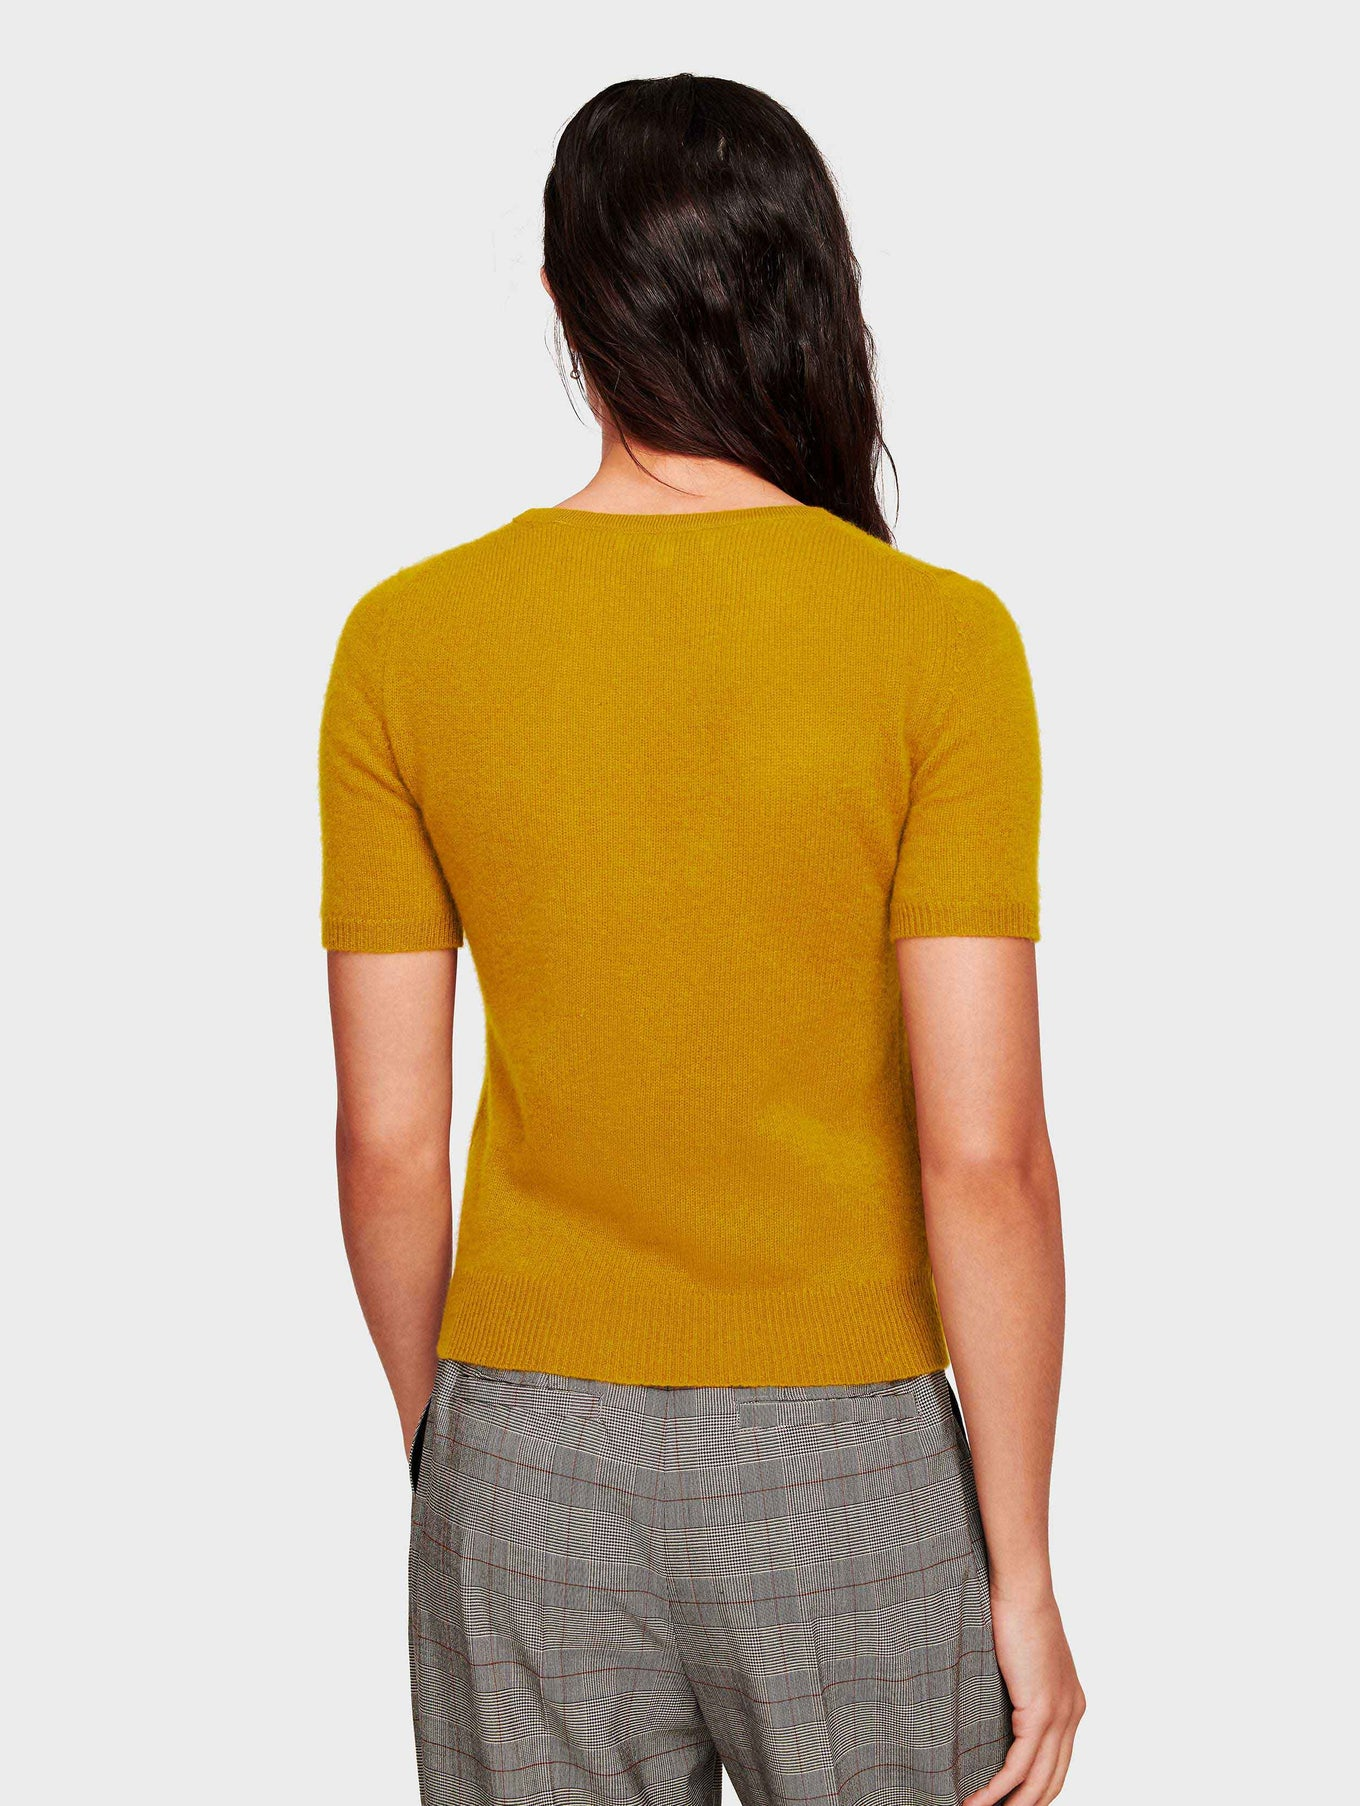 Cashmere Fitted Tee - Antique Gold - Image 3